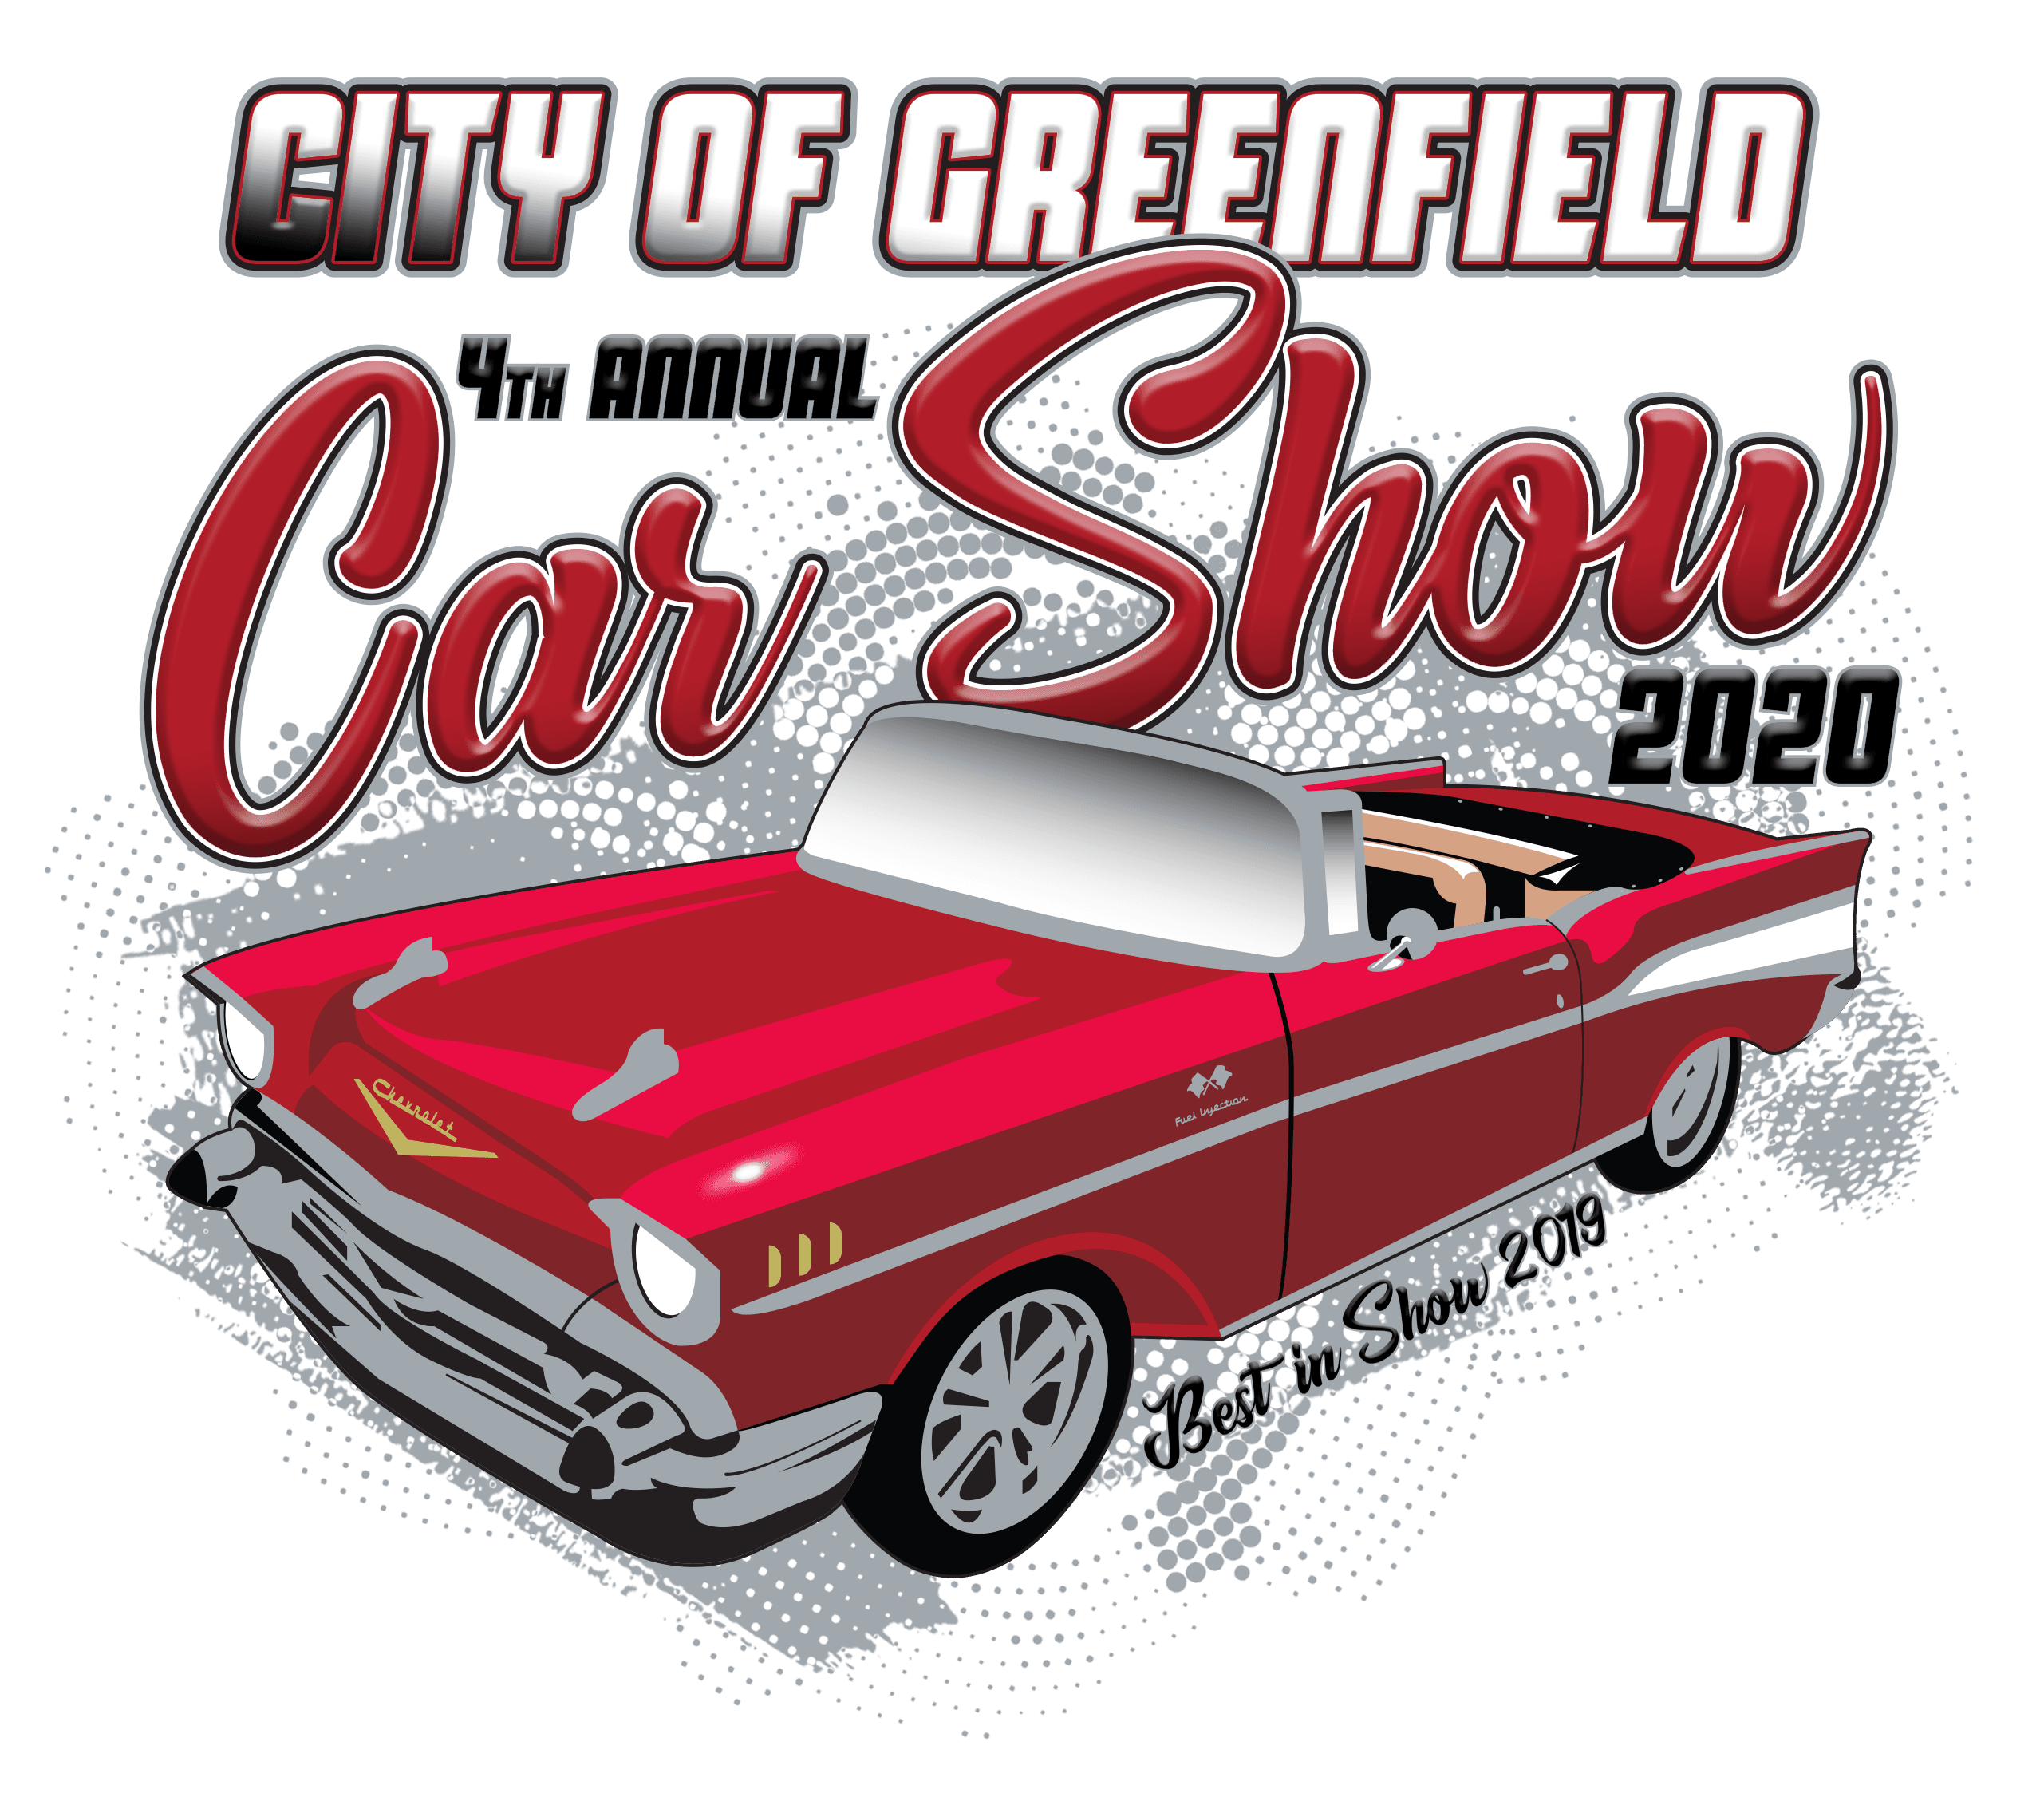 2020 City of Greenfield Car Show